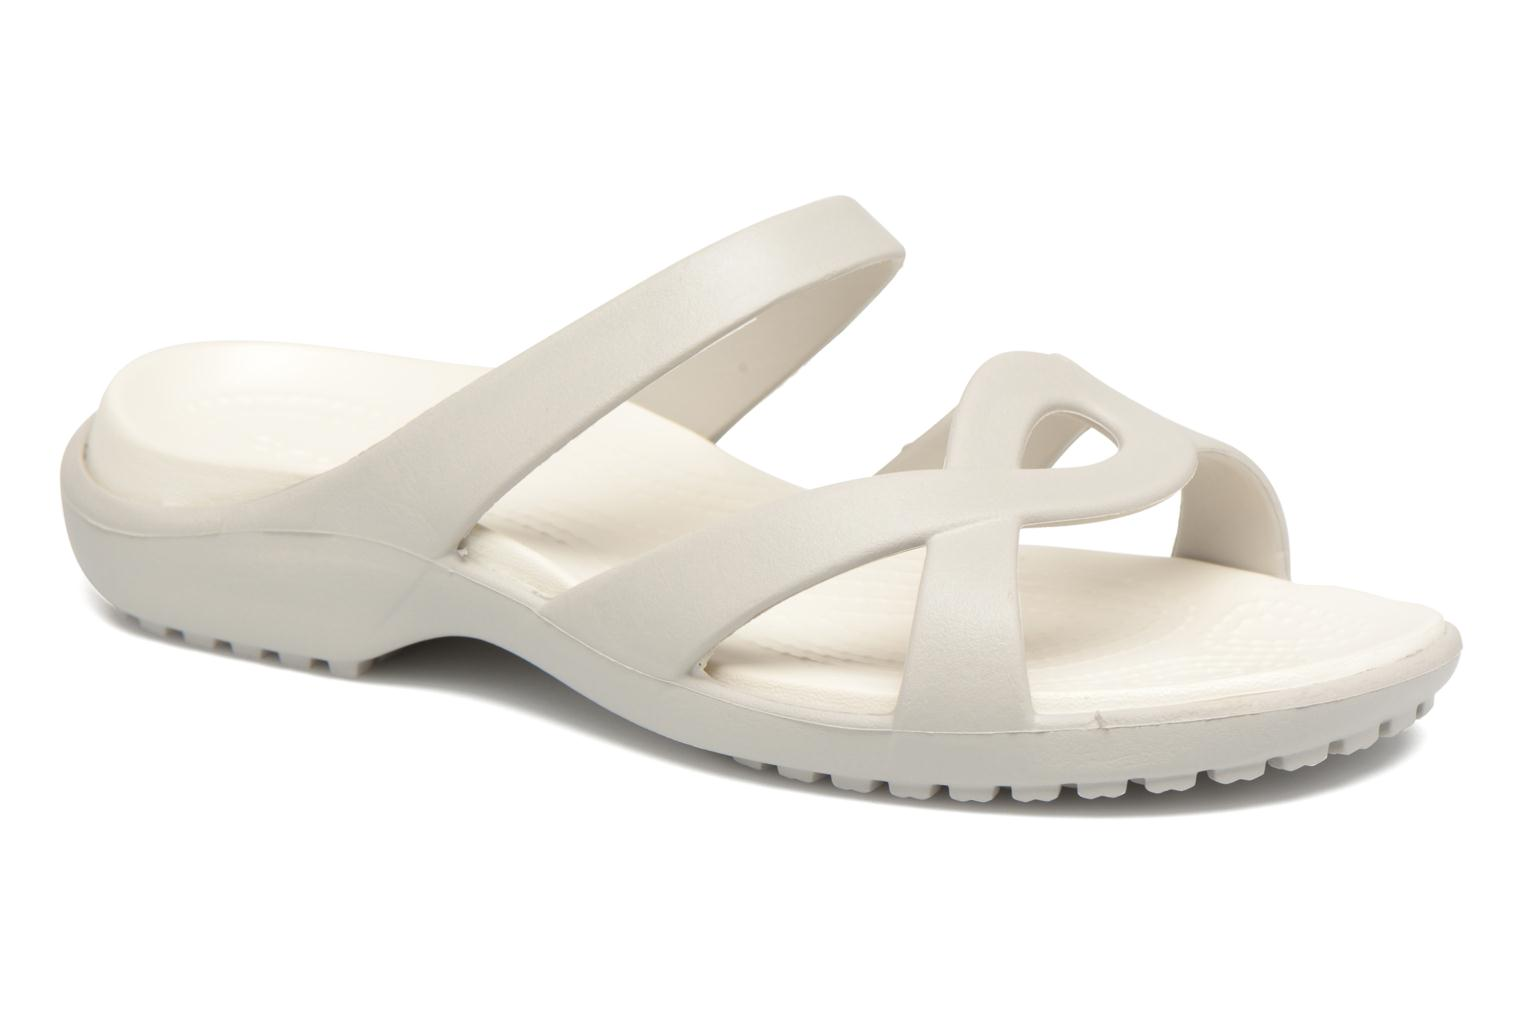 Meleen Twist Sandal W Pearl White/Oyster